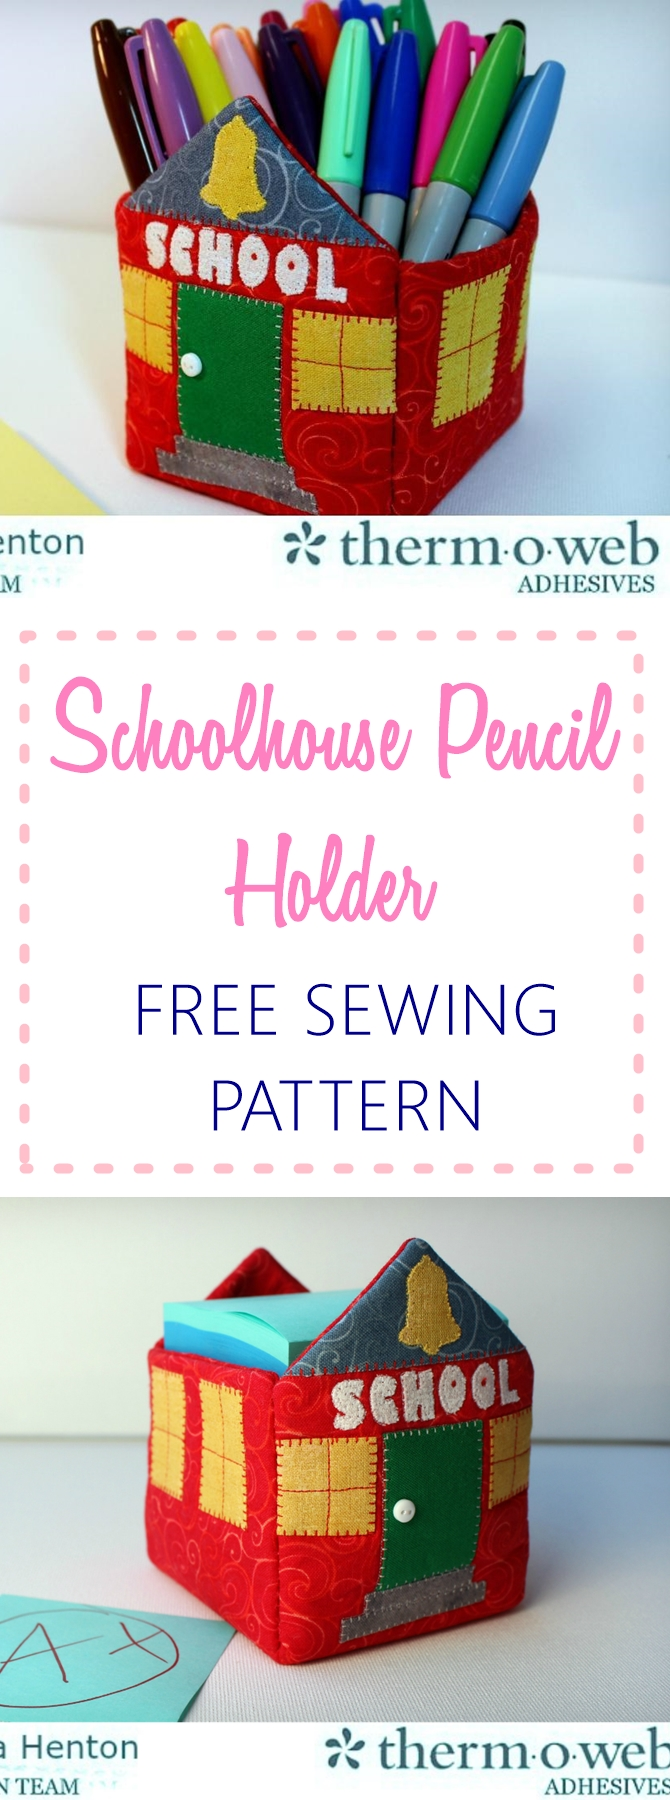 Schoolhouse pencil holder free sewing pattern - Makes a perfect gift for teachers